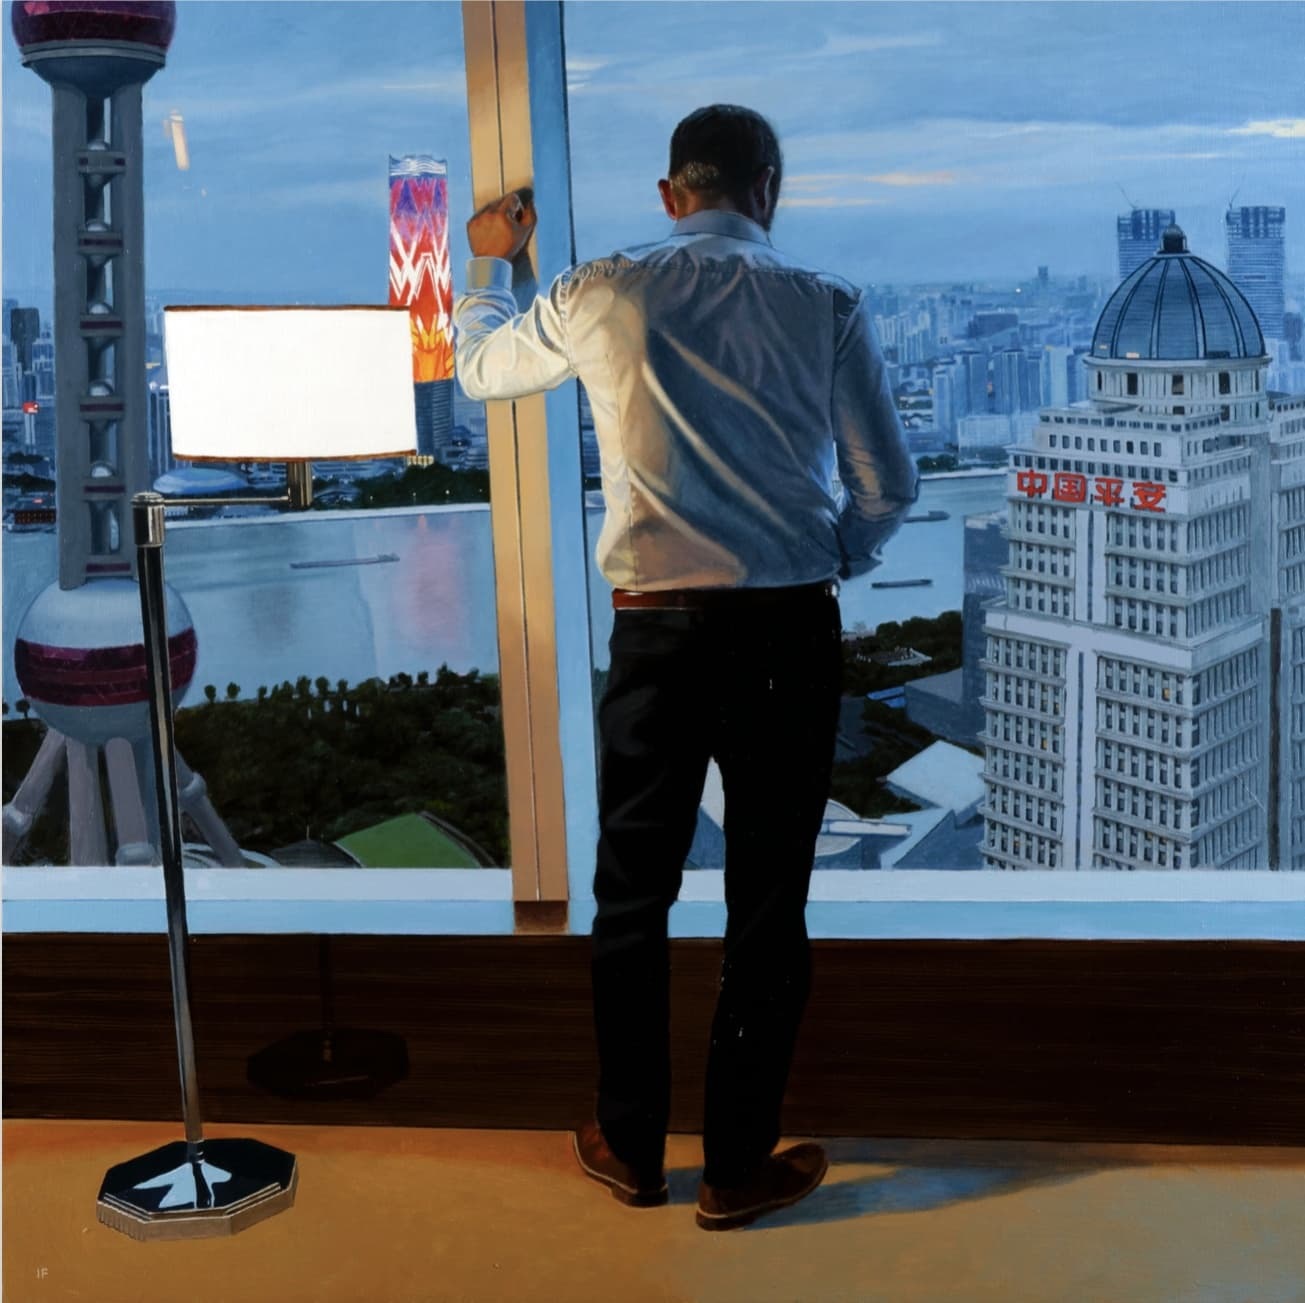 Iain Faulkner, Pudong Window, 2017